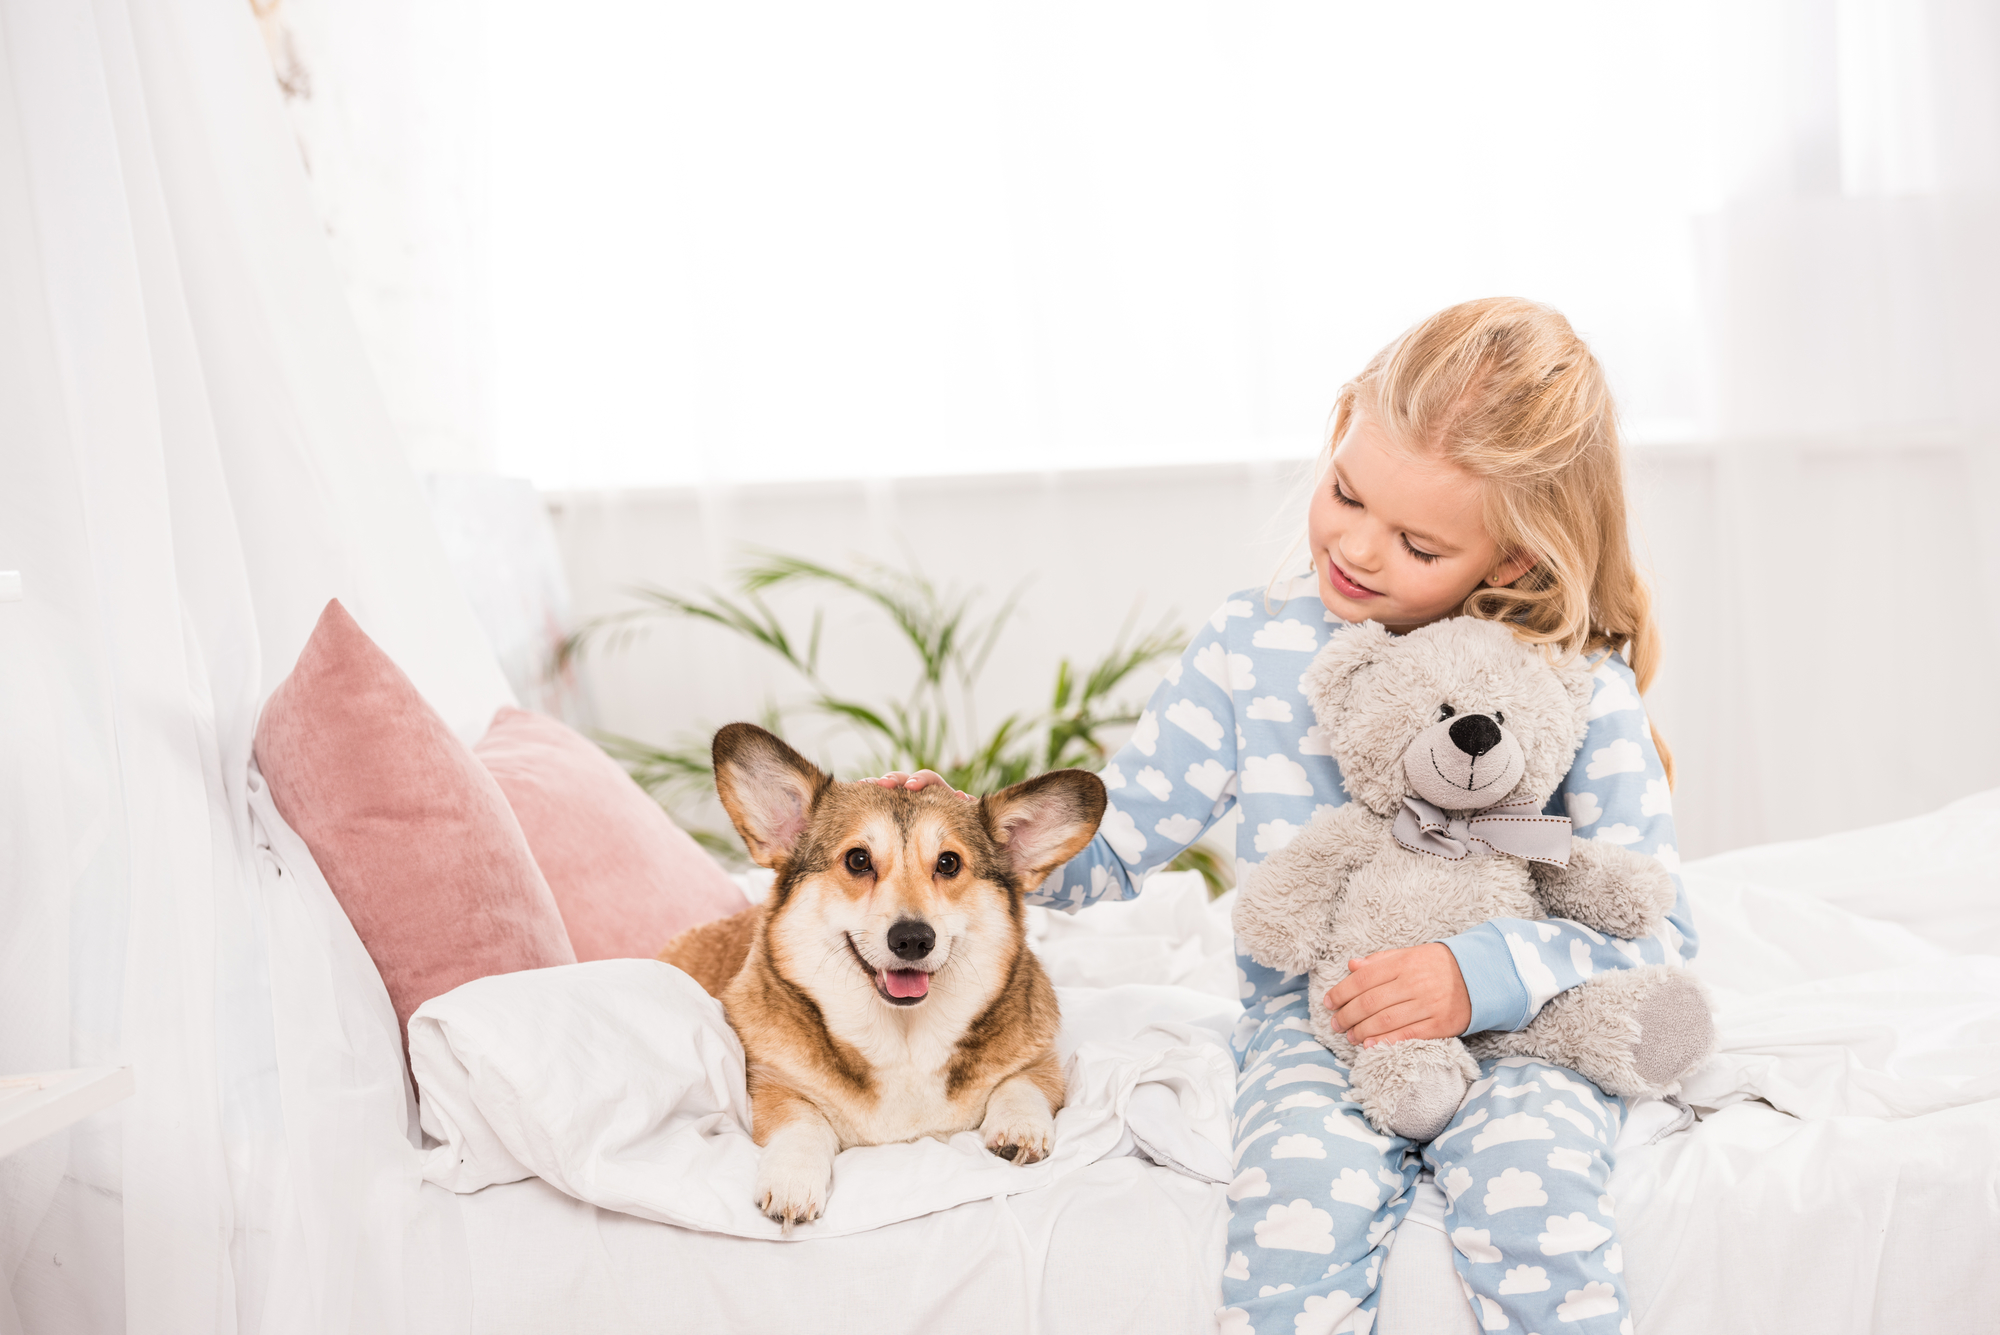 In the hearts of canine owners dogs are part of the family historically a person who shares a home with a pooch had to make interior design sacrifices